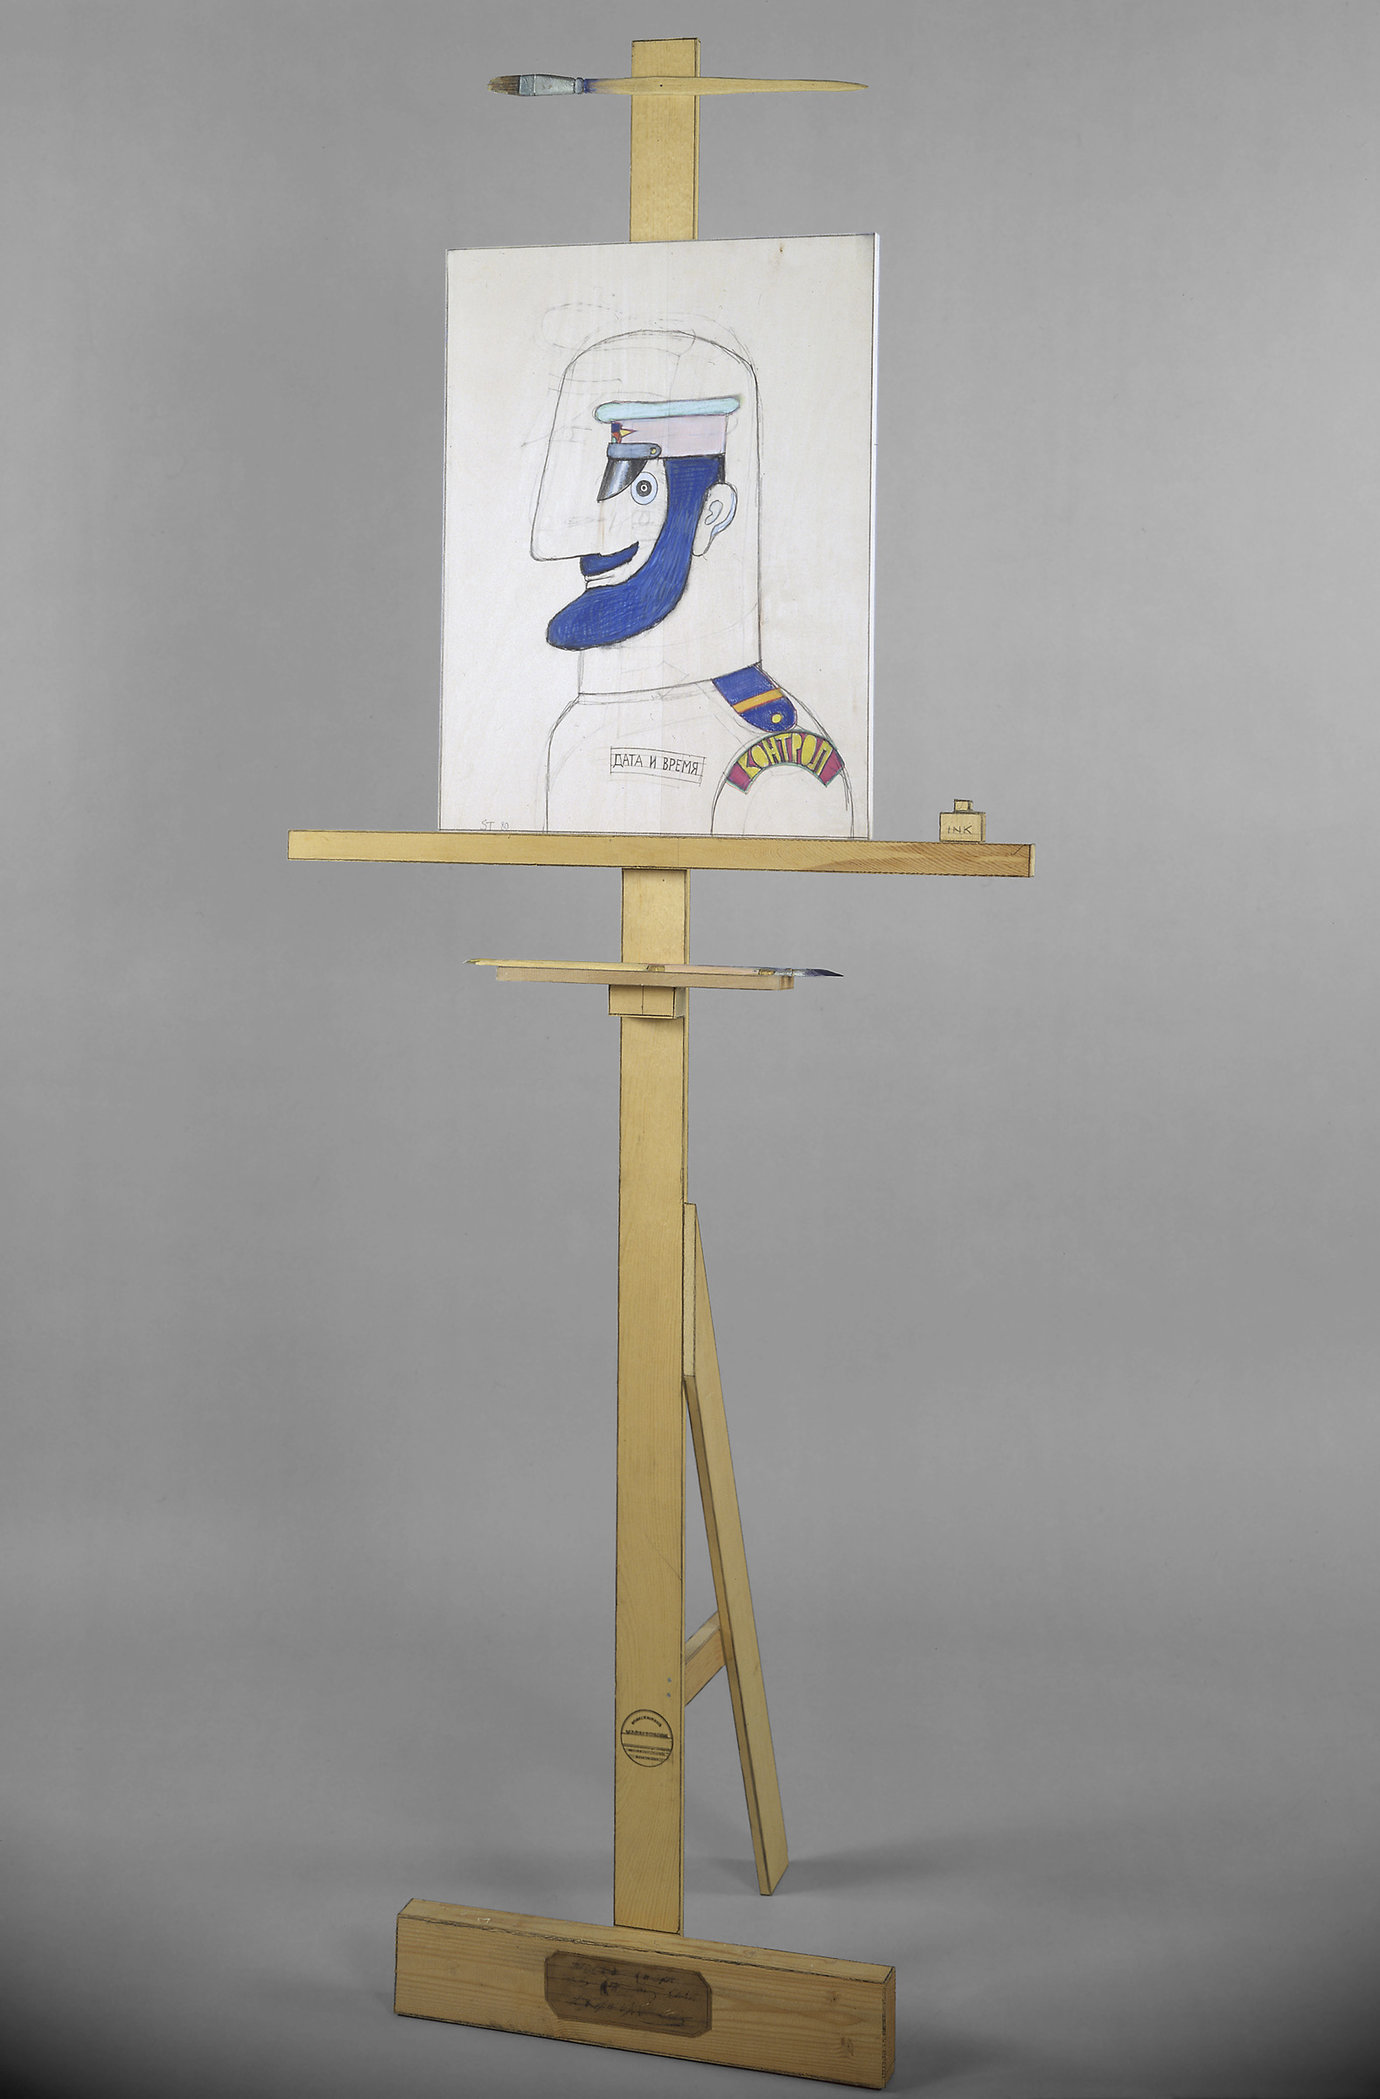 ", 1980. Colored pencil on wood, 70 x 27-1/2 x 13-1/2"" (177.8 x 69.9 x 34.3 cm)."